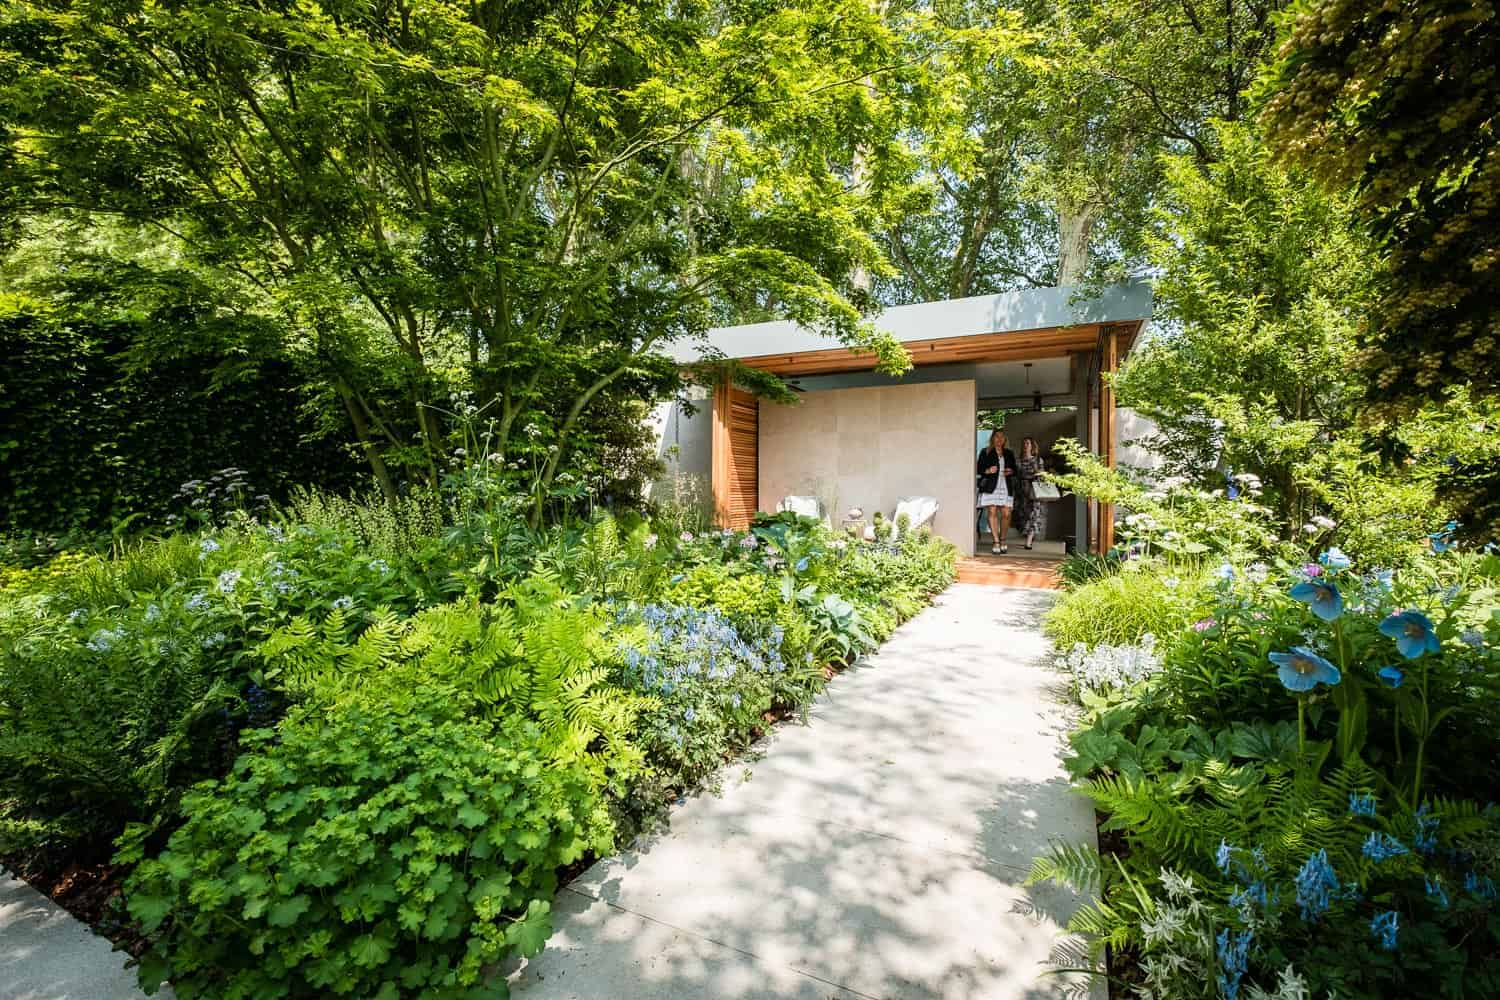 Chelsea Flower Show 2018 The Morgan Stanley Garden for the NSPCC